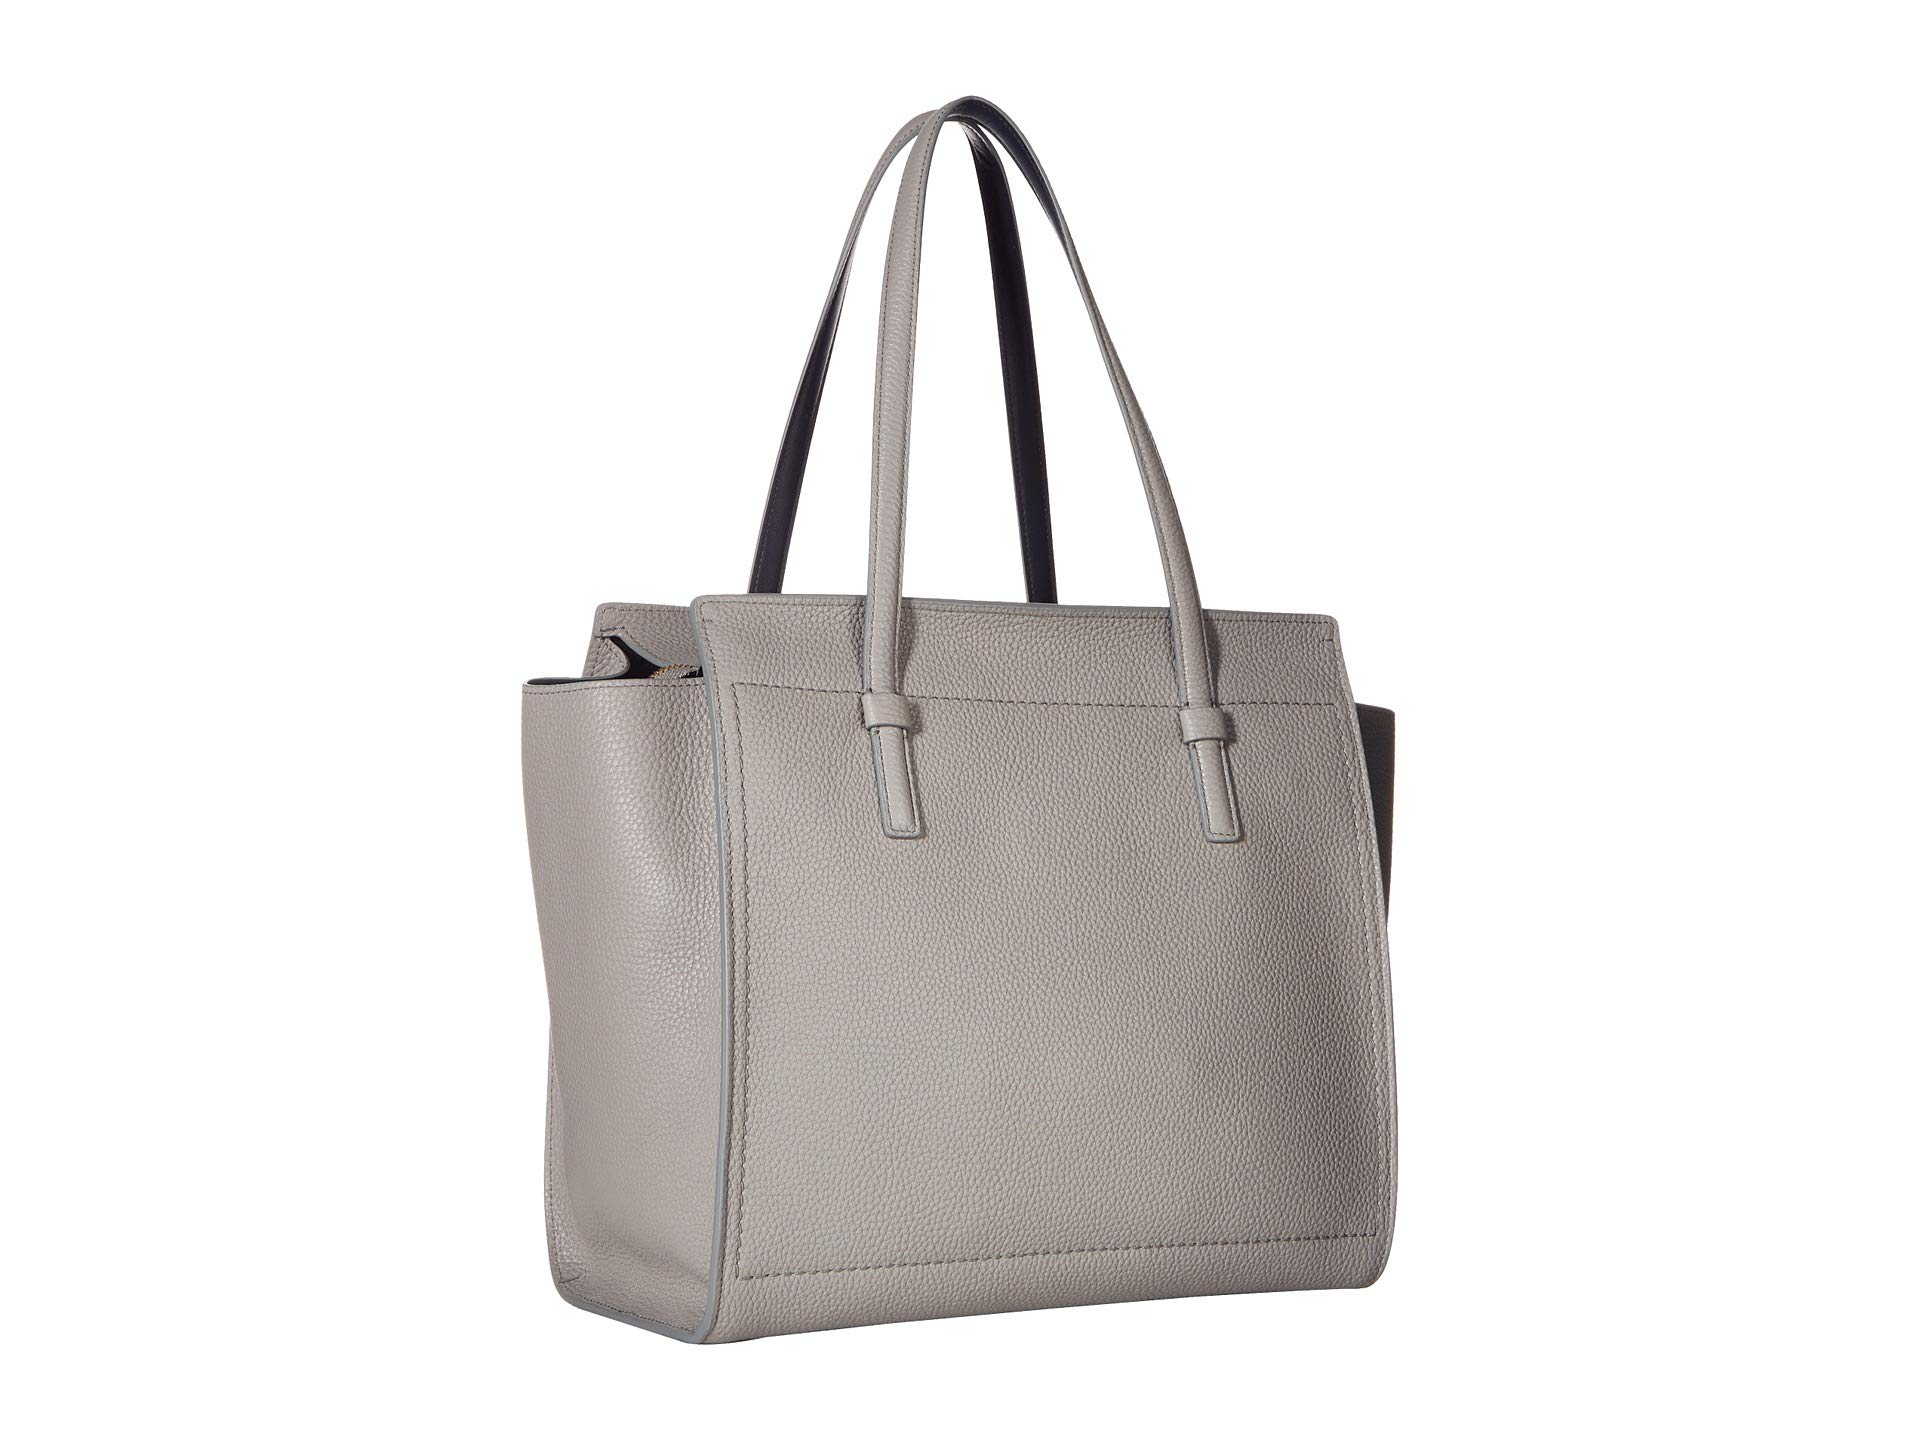 Grey Amy Salvatore Ferragamo 21f216 Pale navy g7gIqZ